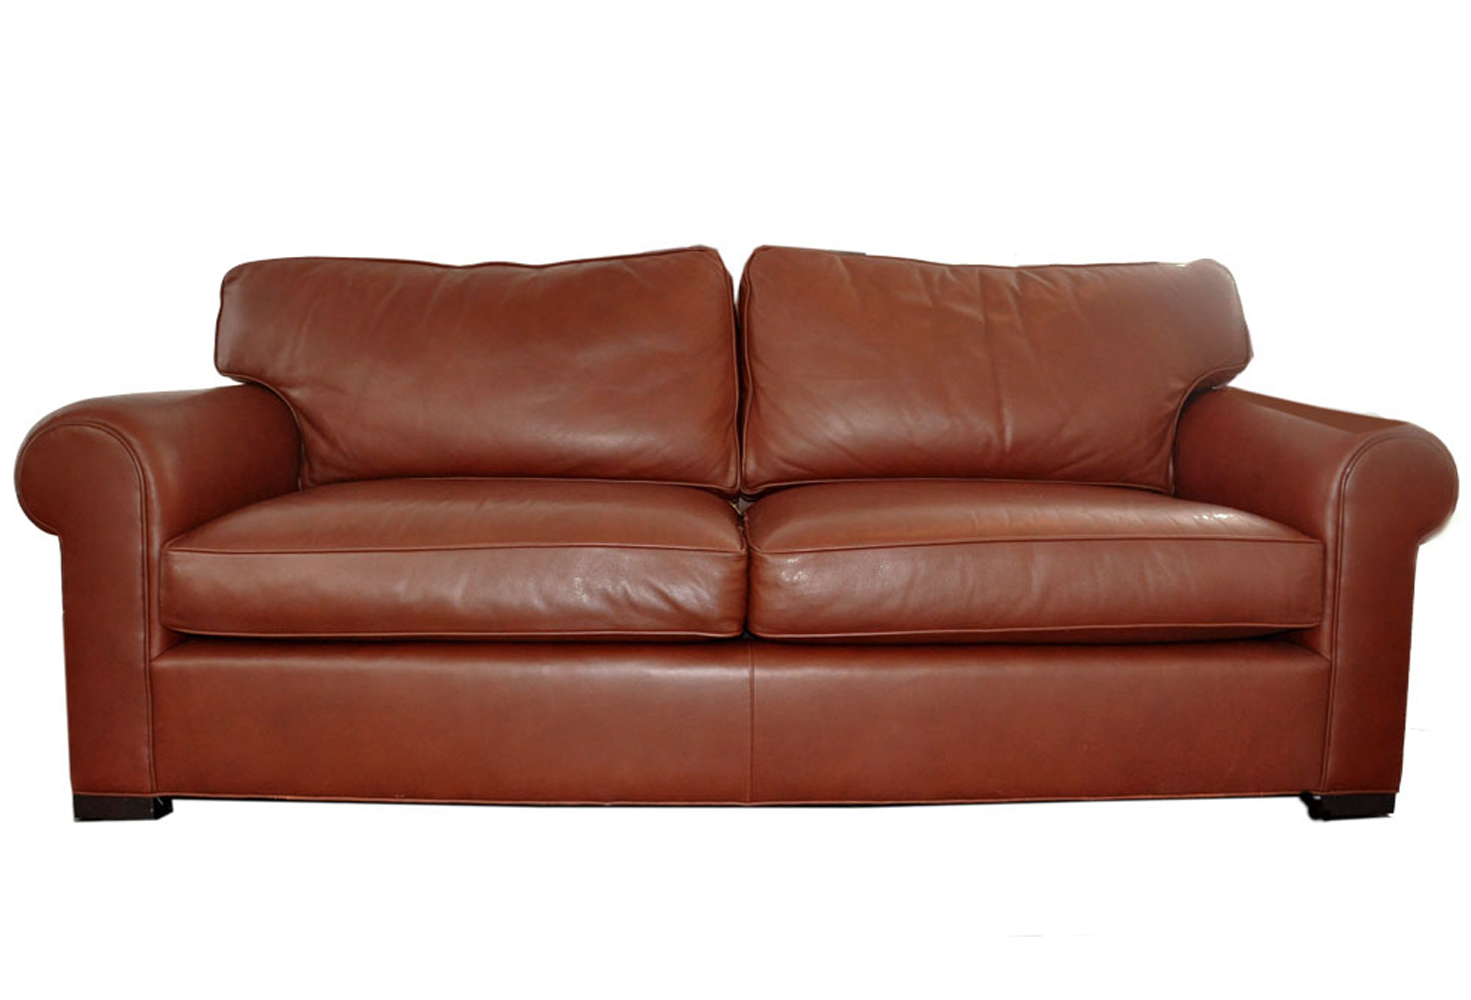 Genial 90u0027s Coach Leather Couch Designed By Barbara Barry